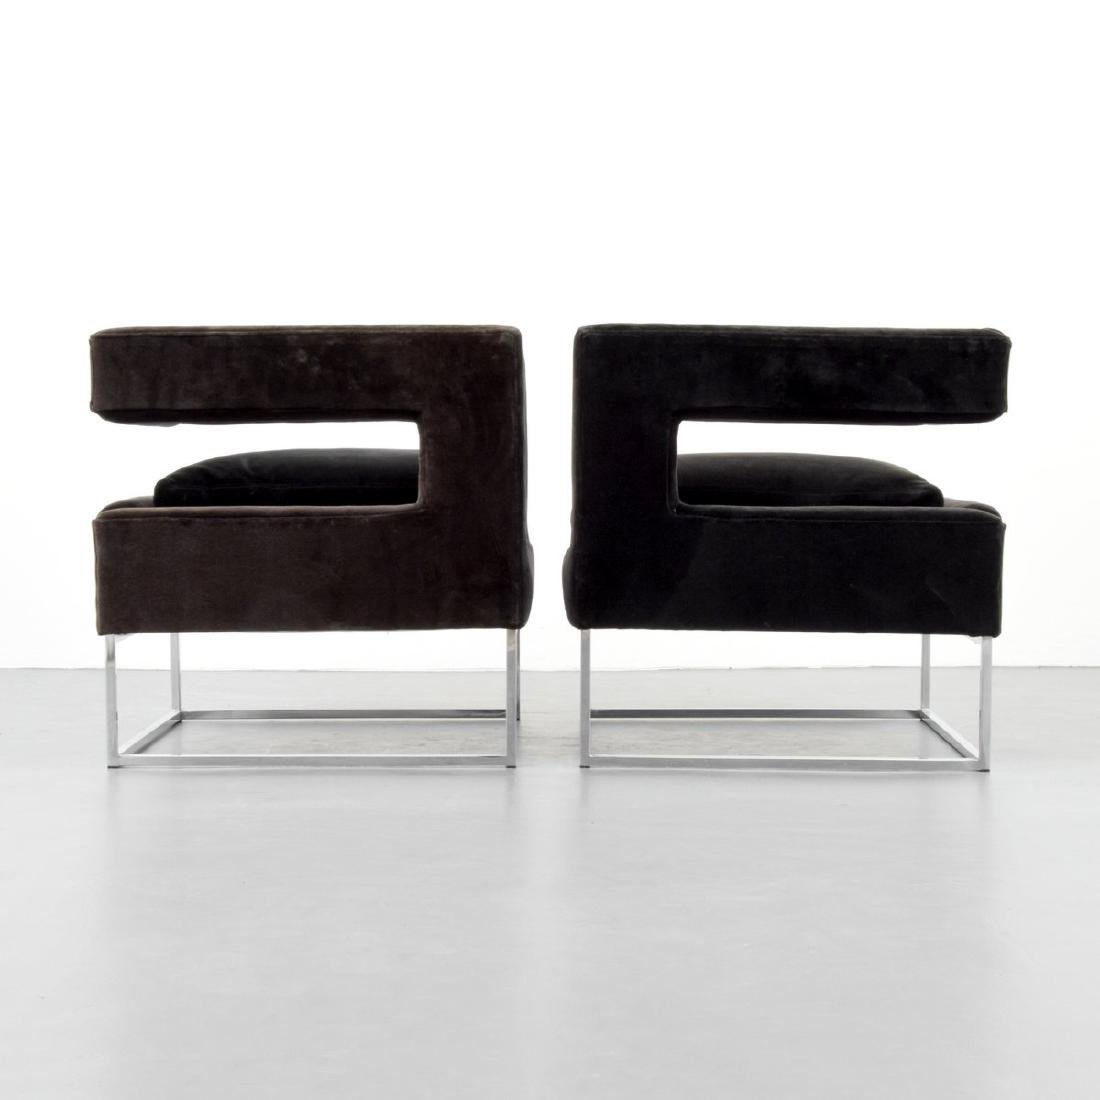 Pair of Milo Baughman Lounge Chairs - 4